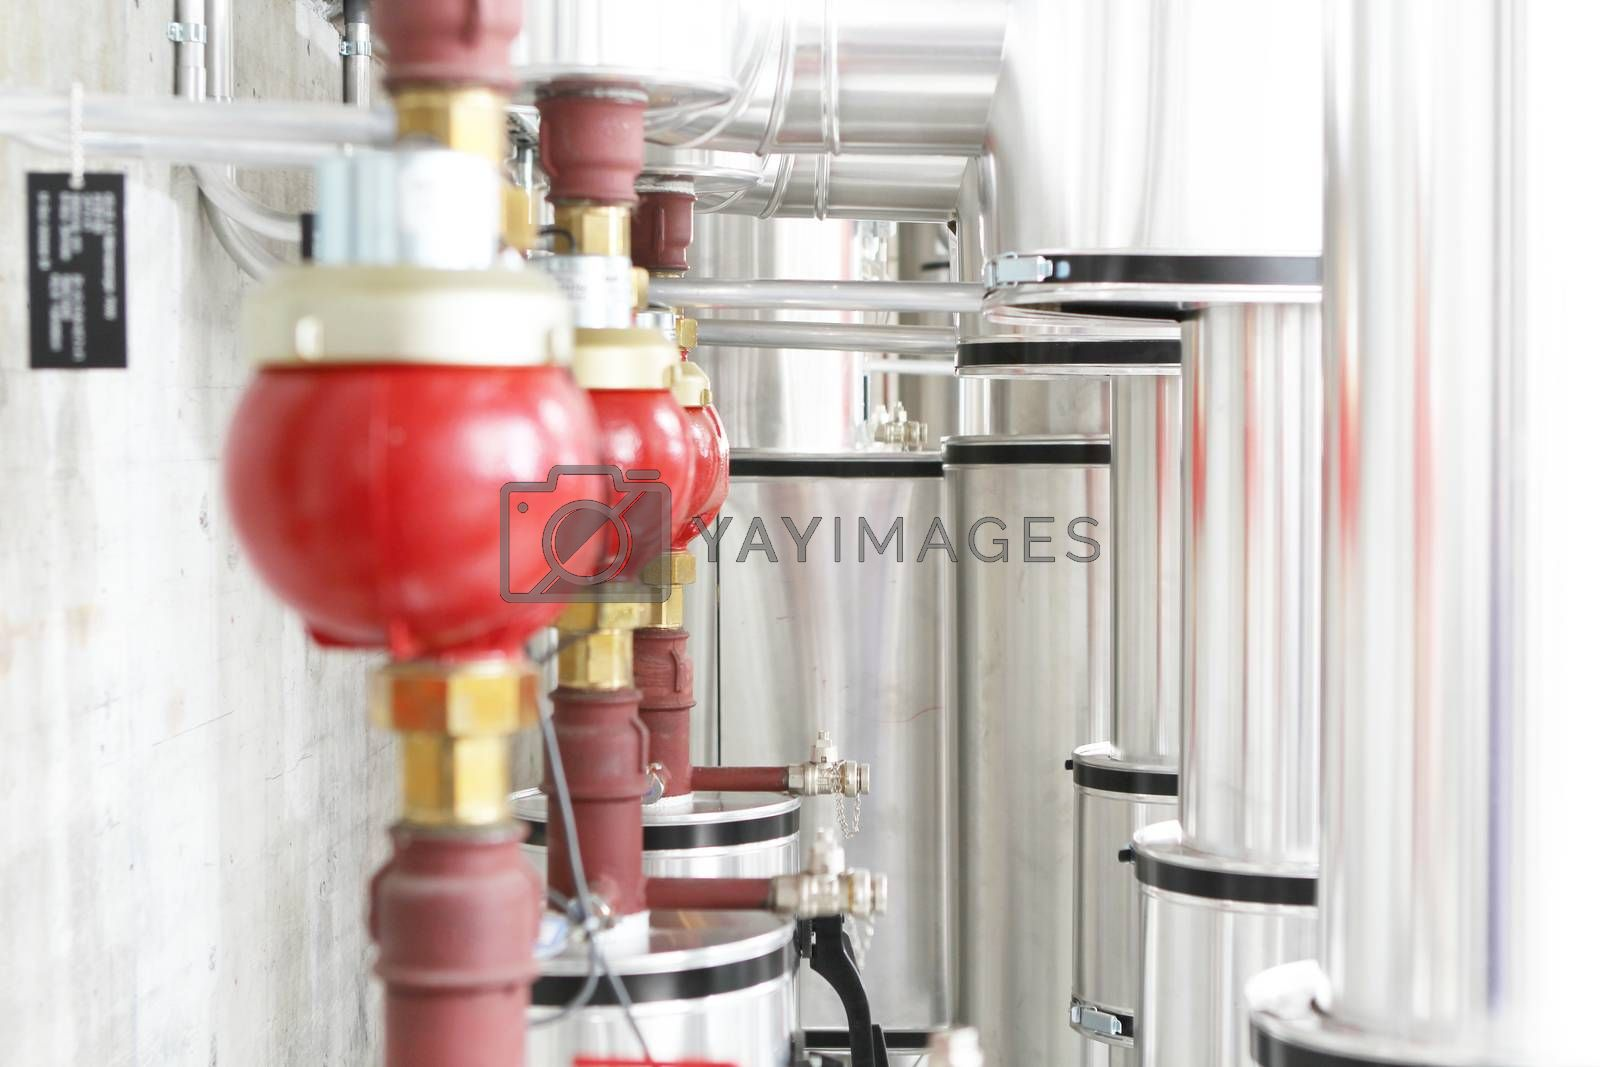 chrome pipes in heating and AC rooms in buildings of factories and hospital. Several pipes with silver pipes and red connector